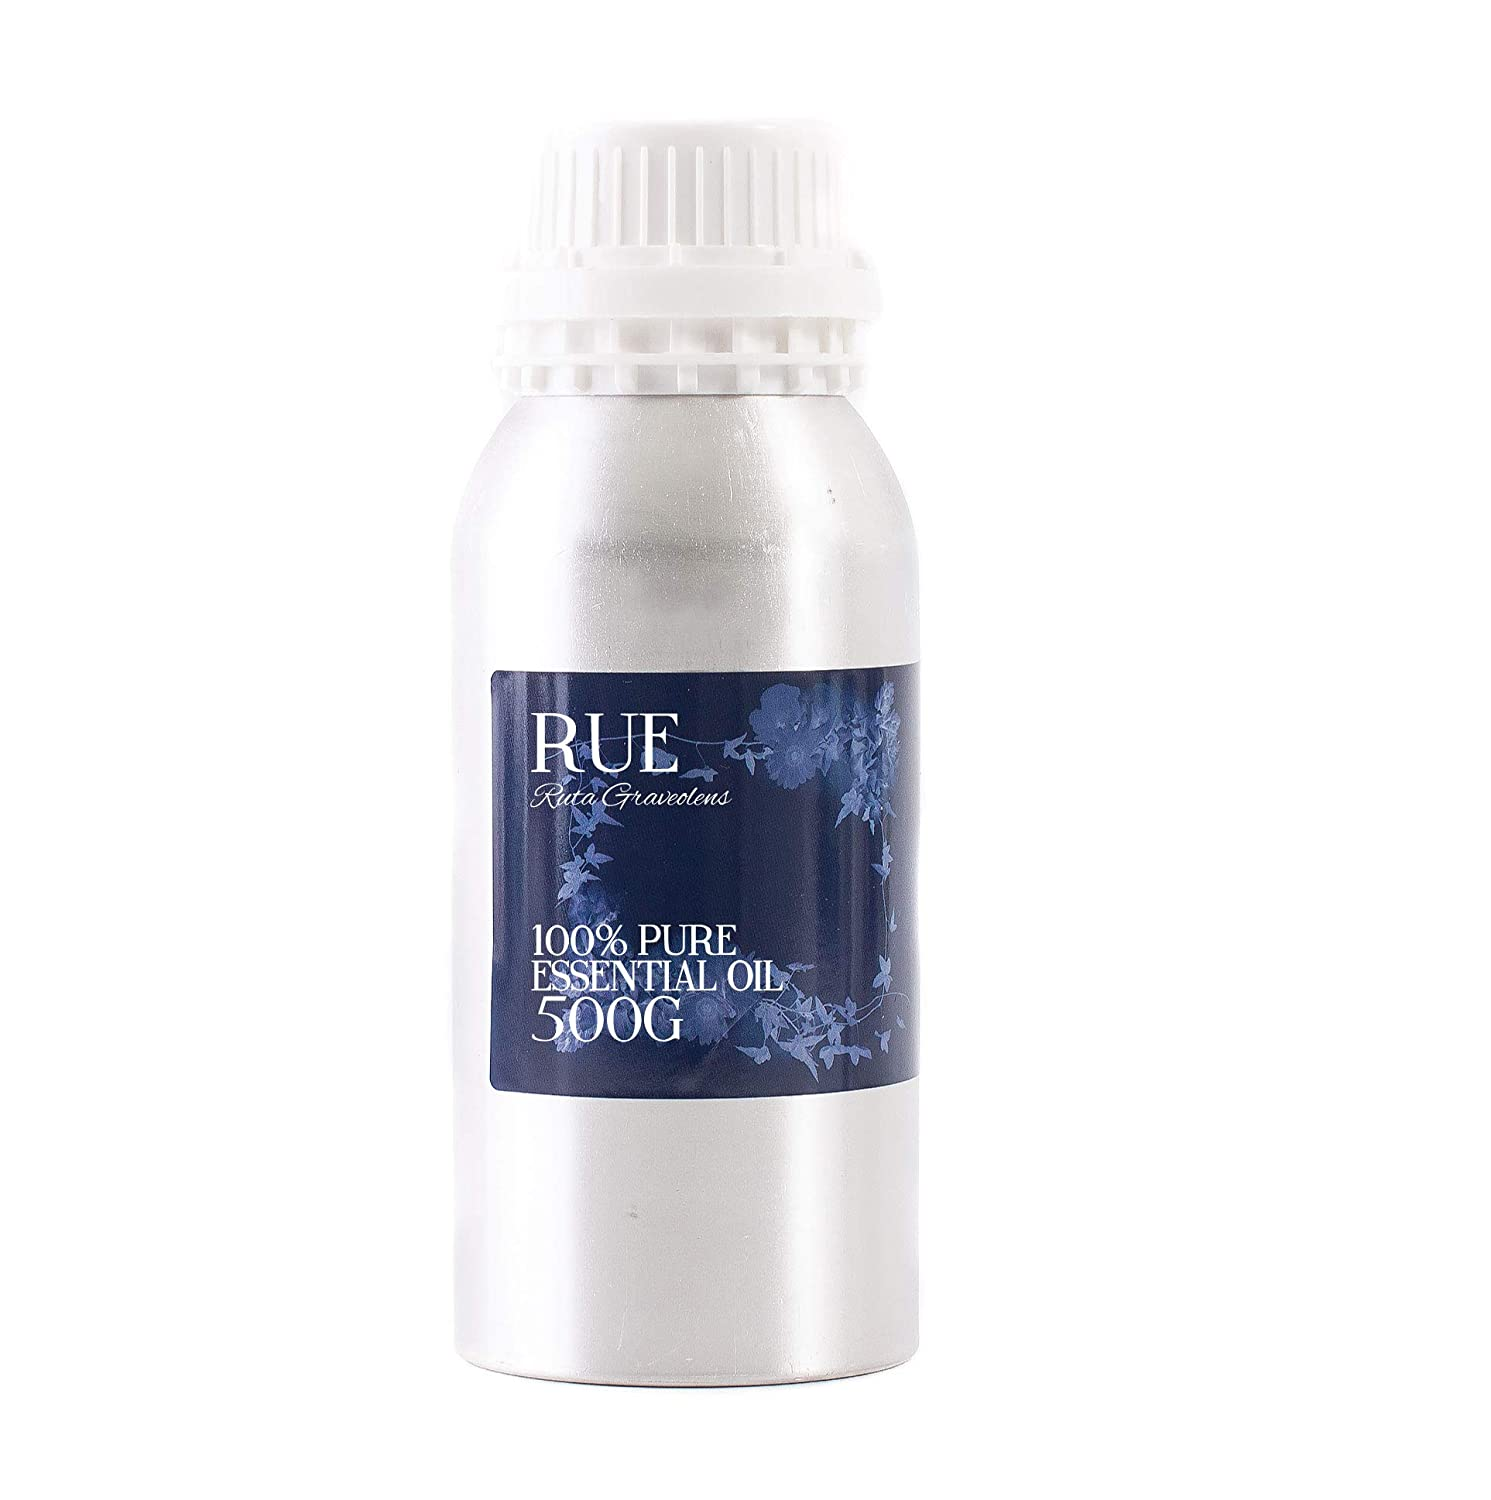 【超特価sale開催】 Mystic Essential Moments | Rue Essential Oil - Rue - 500g - 100% Pure B07QCCM4SQ, 亜東書店-:1eca8d02 --- a0267596.xsph.ru